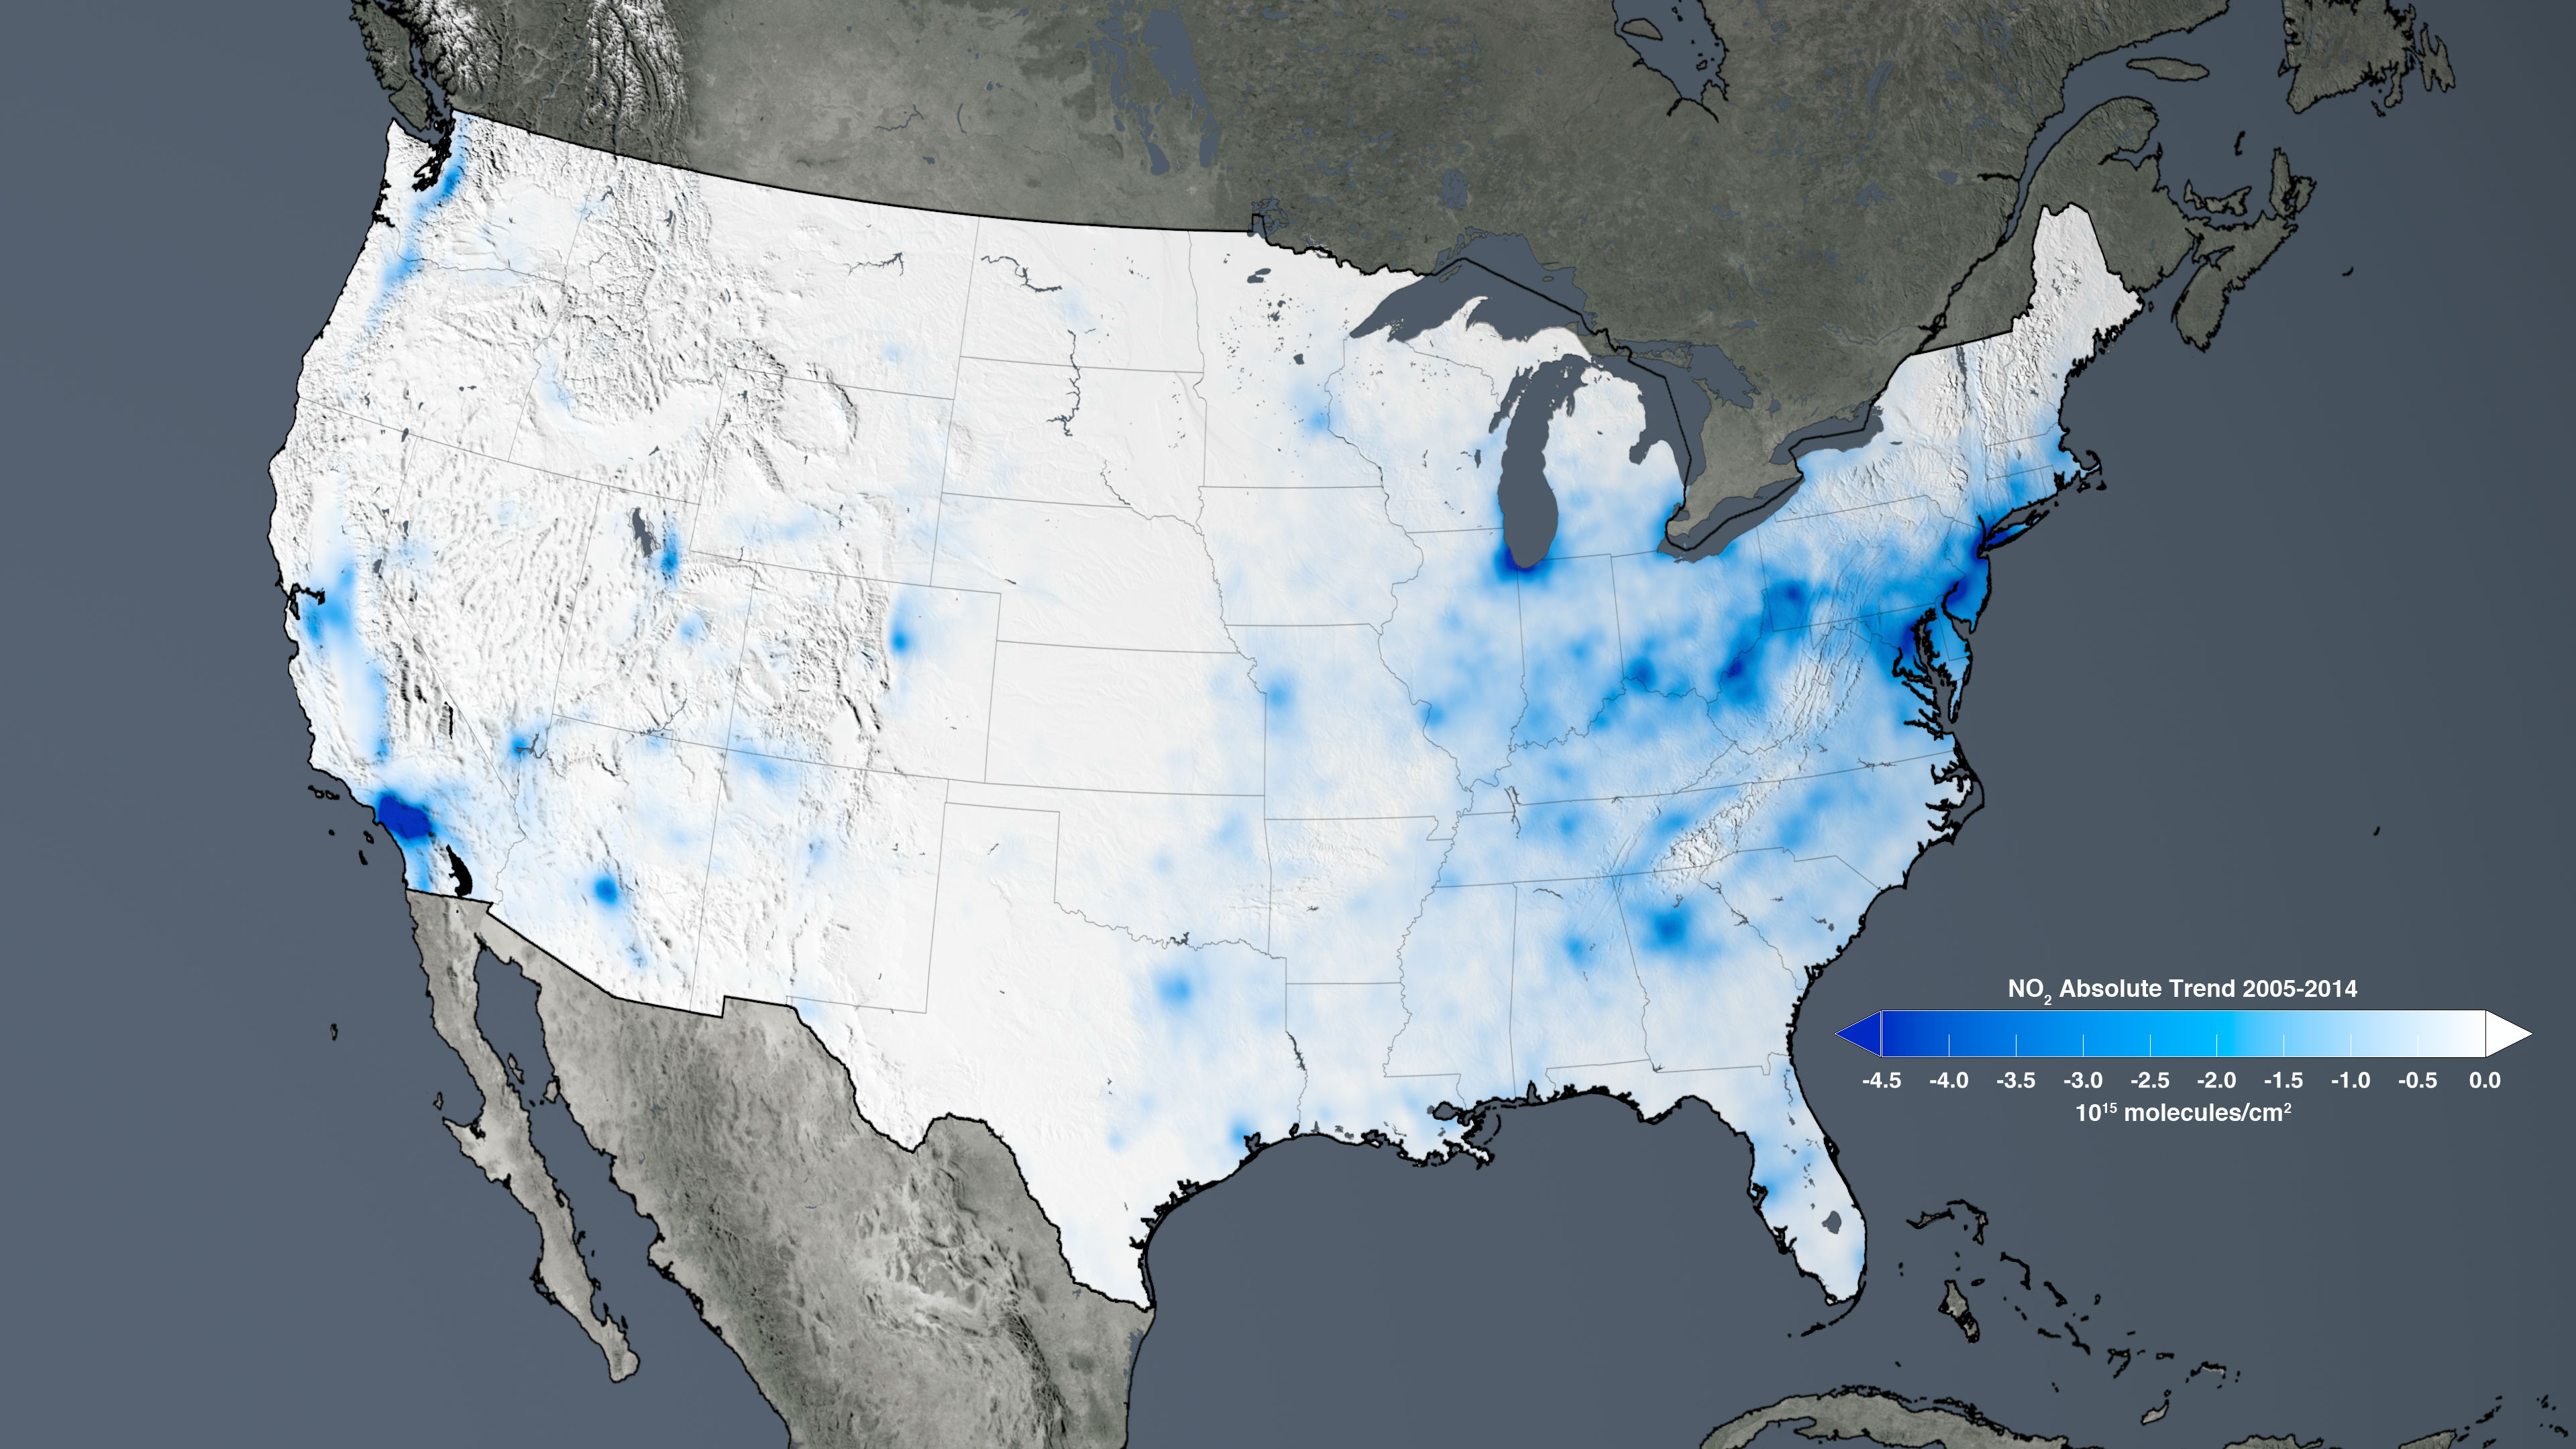 the trend map of the united states shows the large decreases in nitrogen dioxide concentrations tied